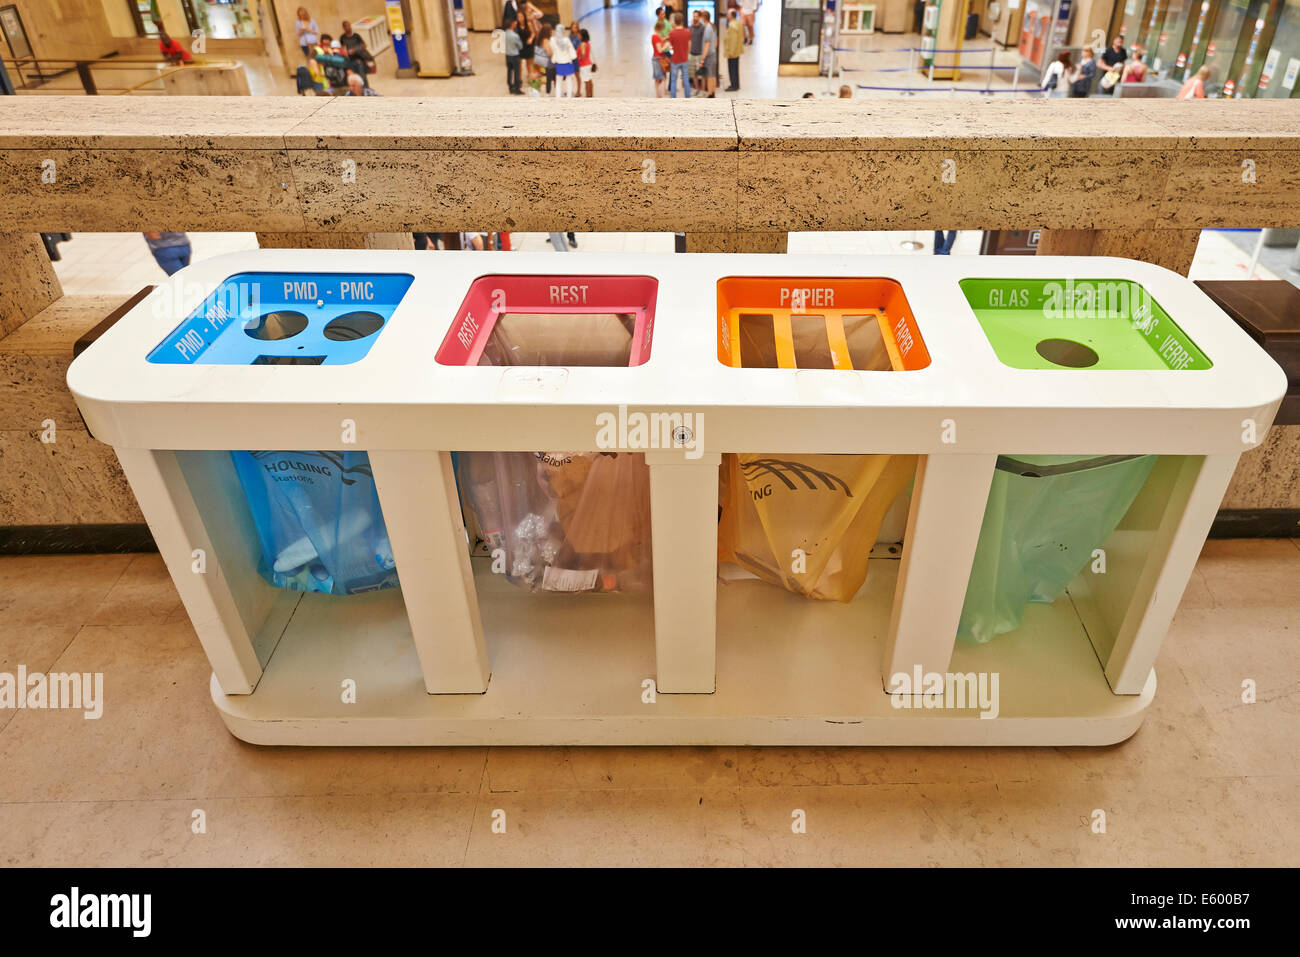 BRUSSELS, BELGIUM - JULY 17, 2014: Four color trash cans ,garbage bin, in central railway station in Brussels on - Stock Image